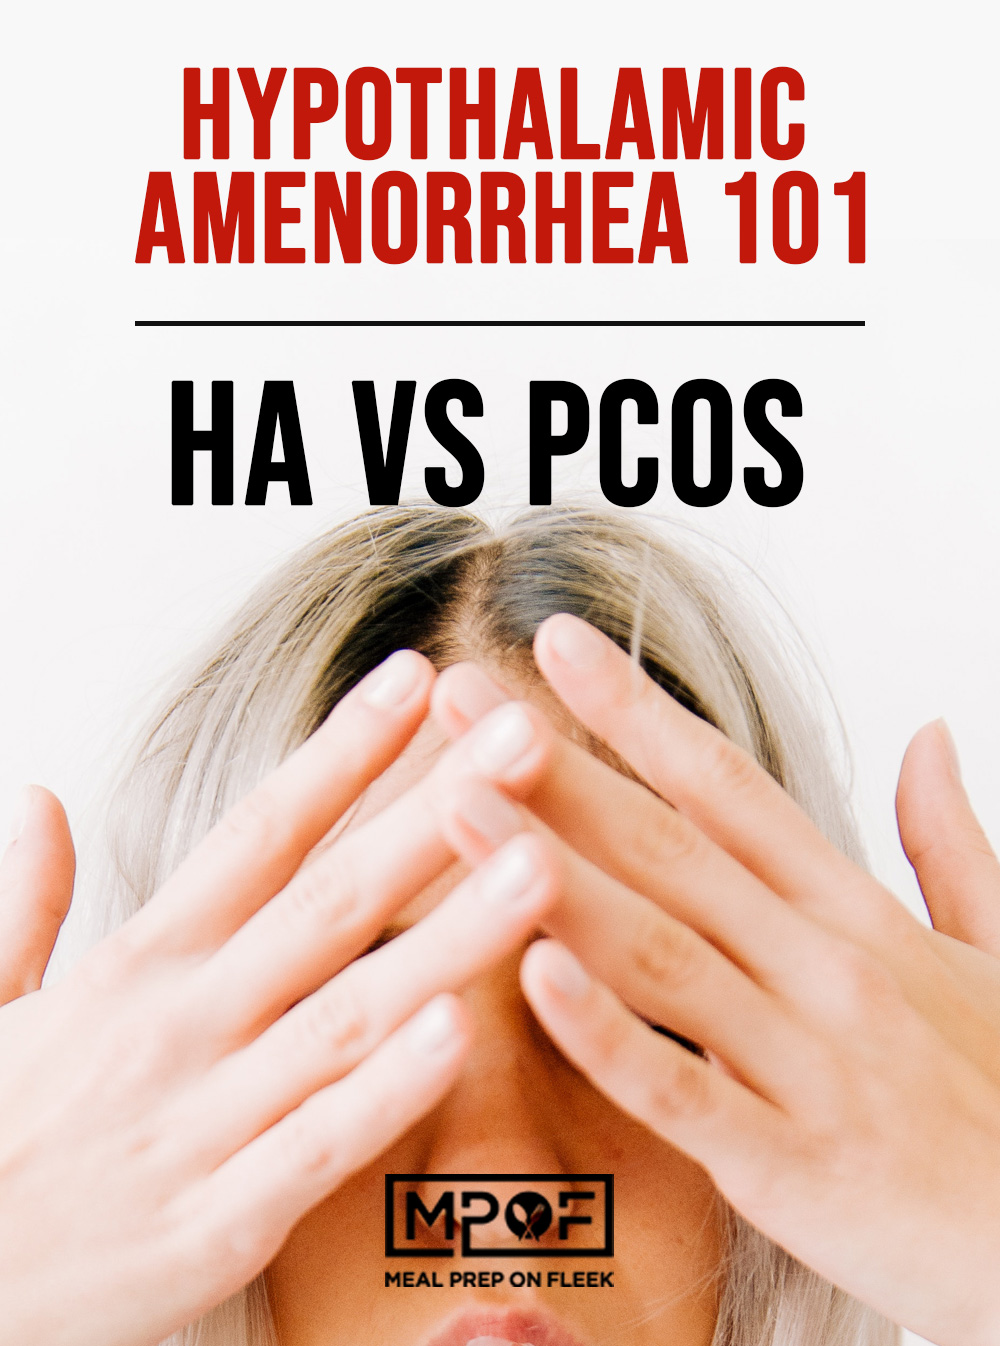 Hypothalamic Amenorrhea